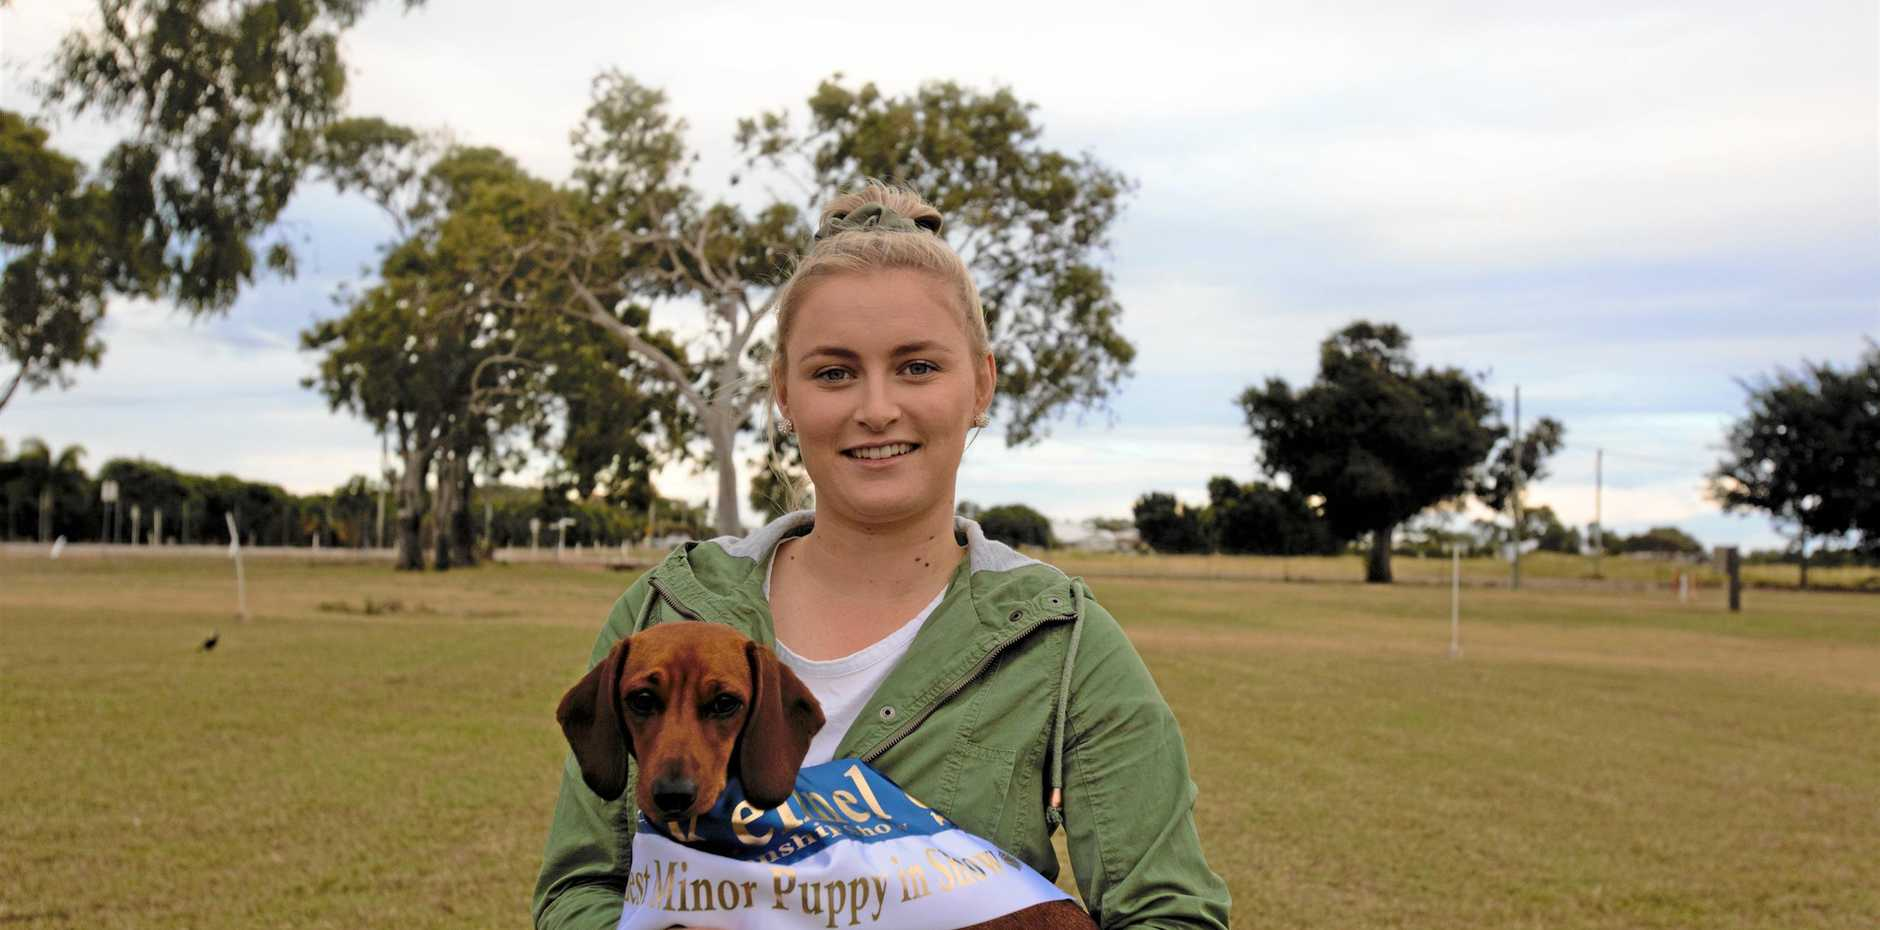 Shontelle Betzel and her Miniature Dachshund Daisy are ready for a dog filled weekend.